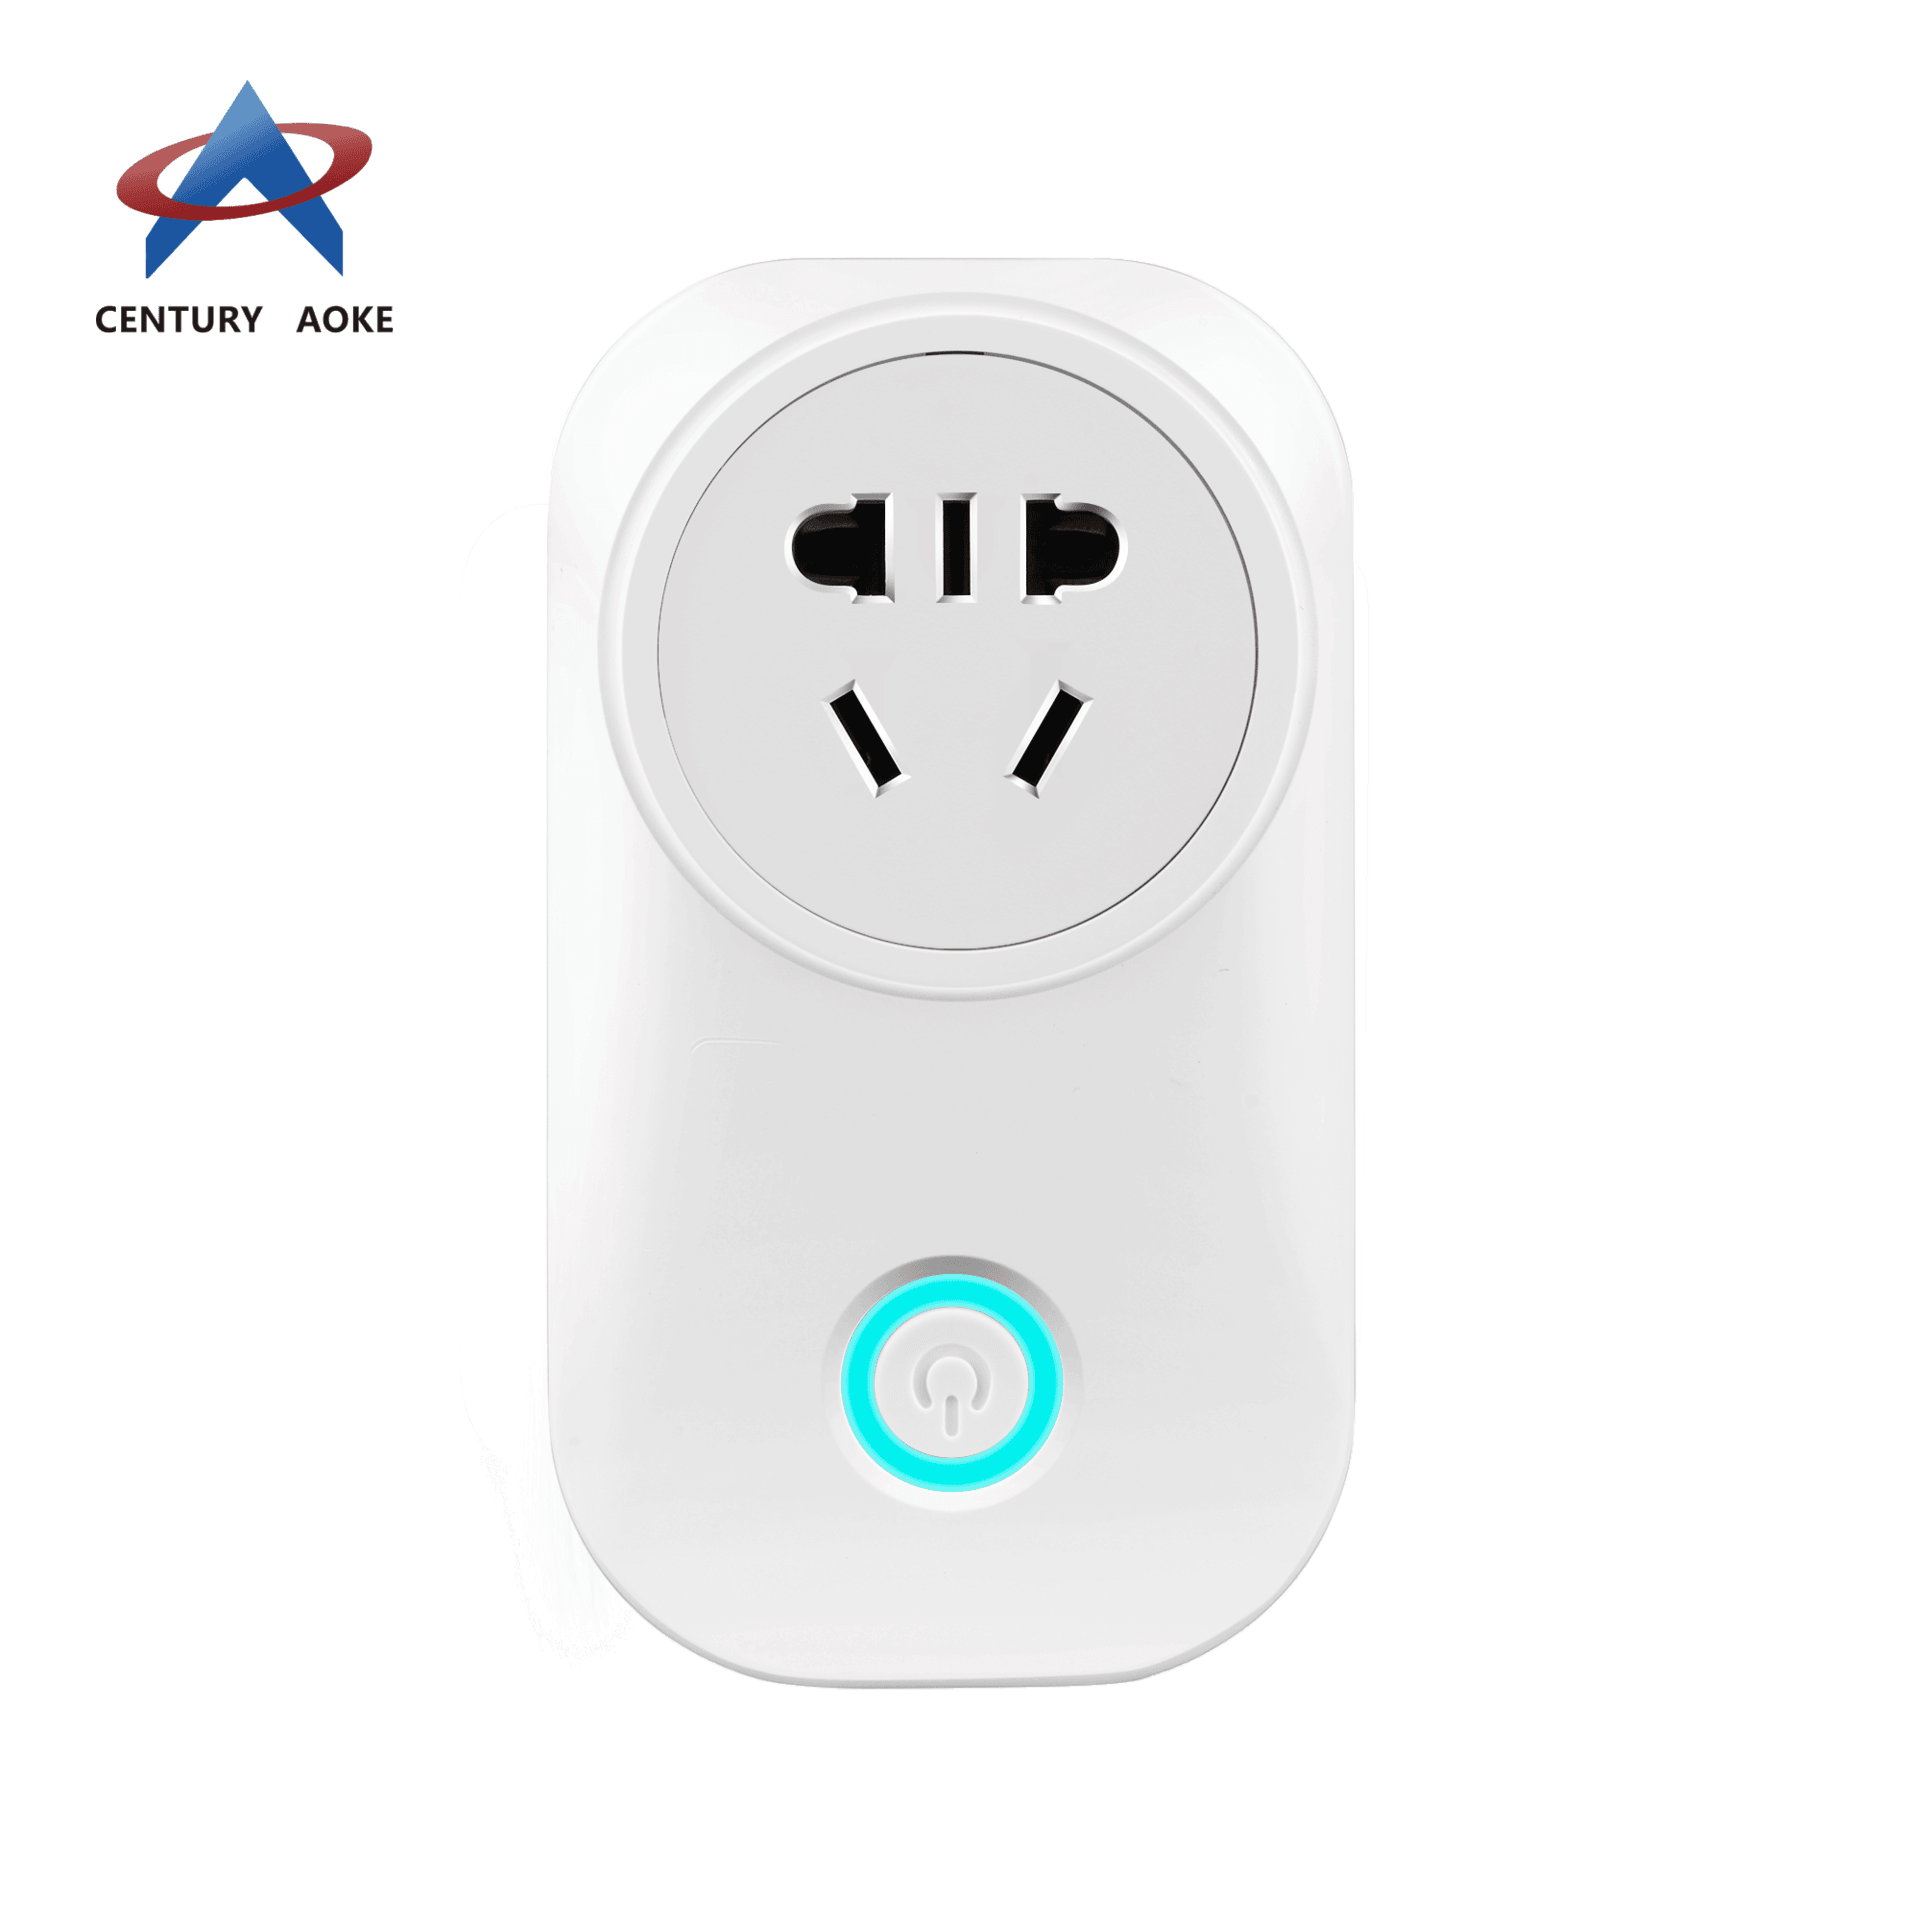 Aoke wireless power socket inquire now used in electric drying racks